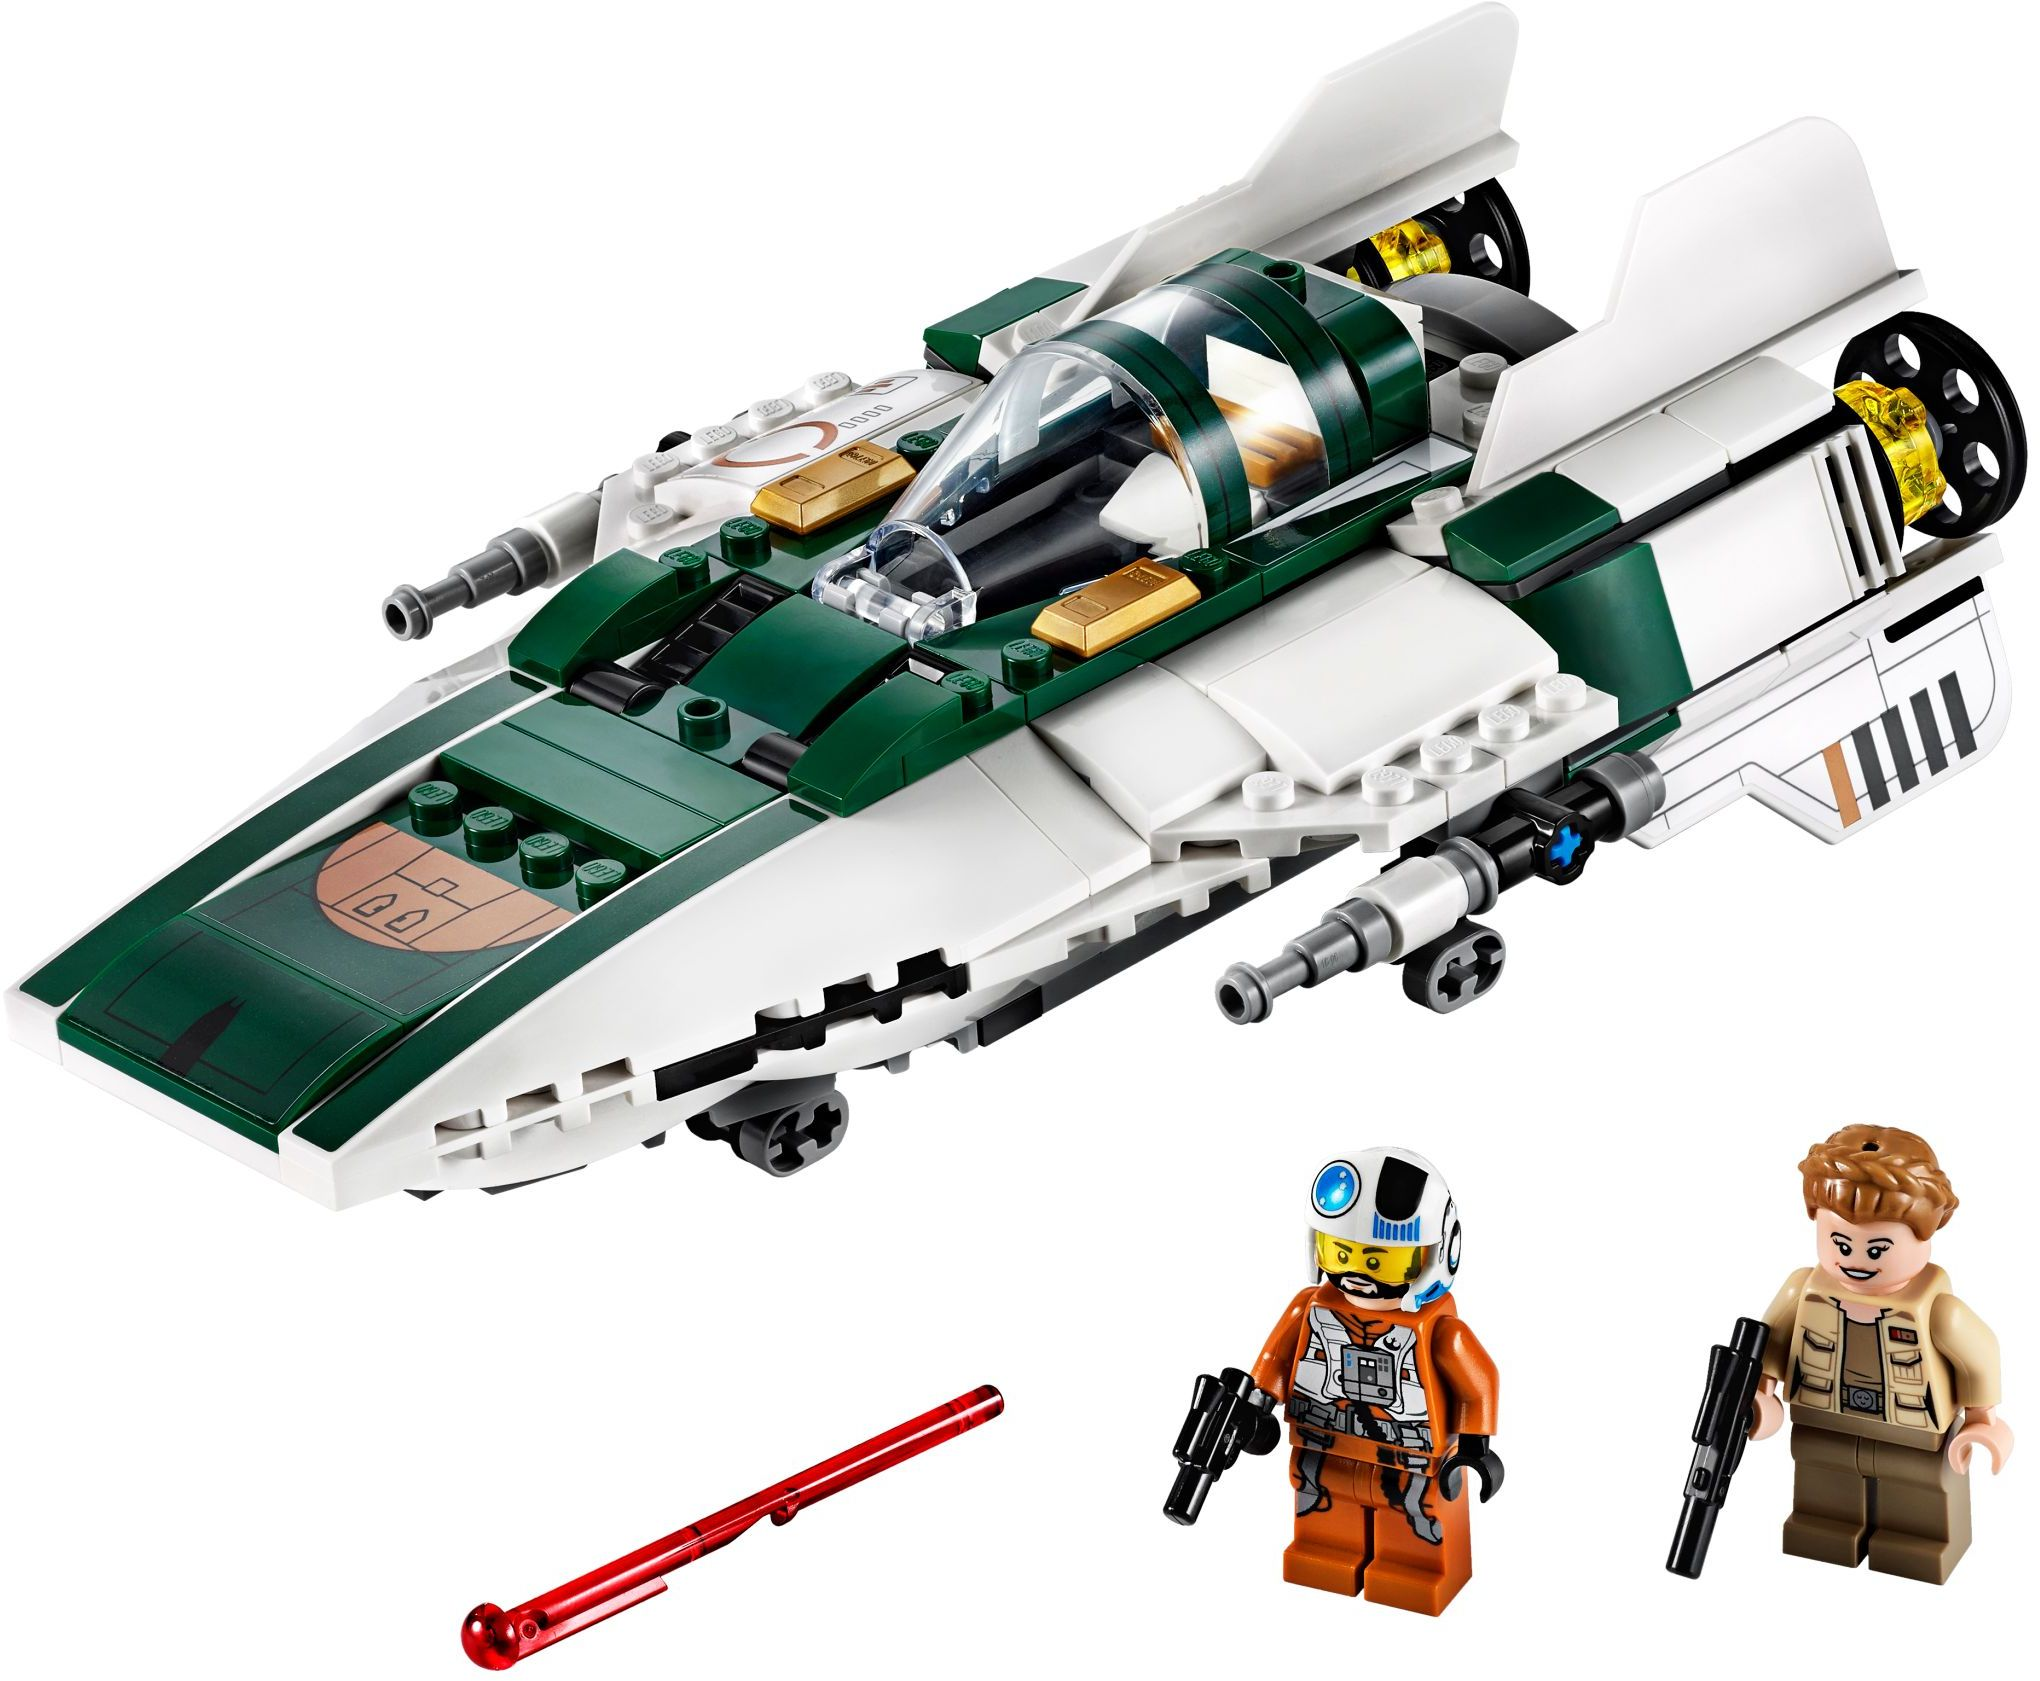 LEGO Rise of Skywalker Sets A-Wing